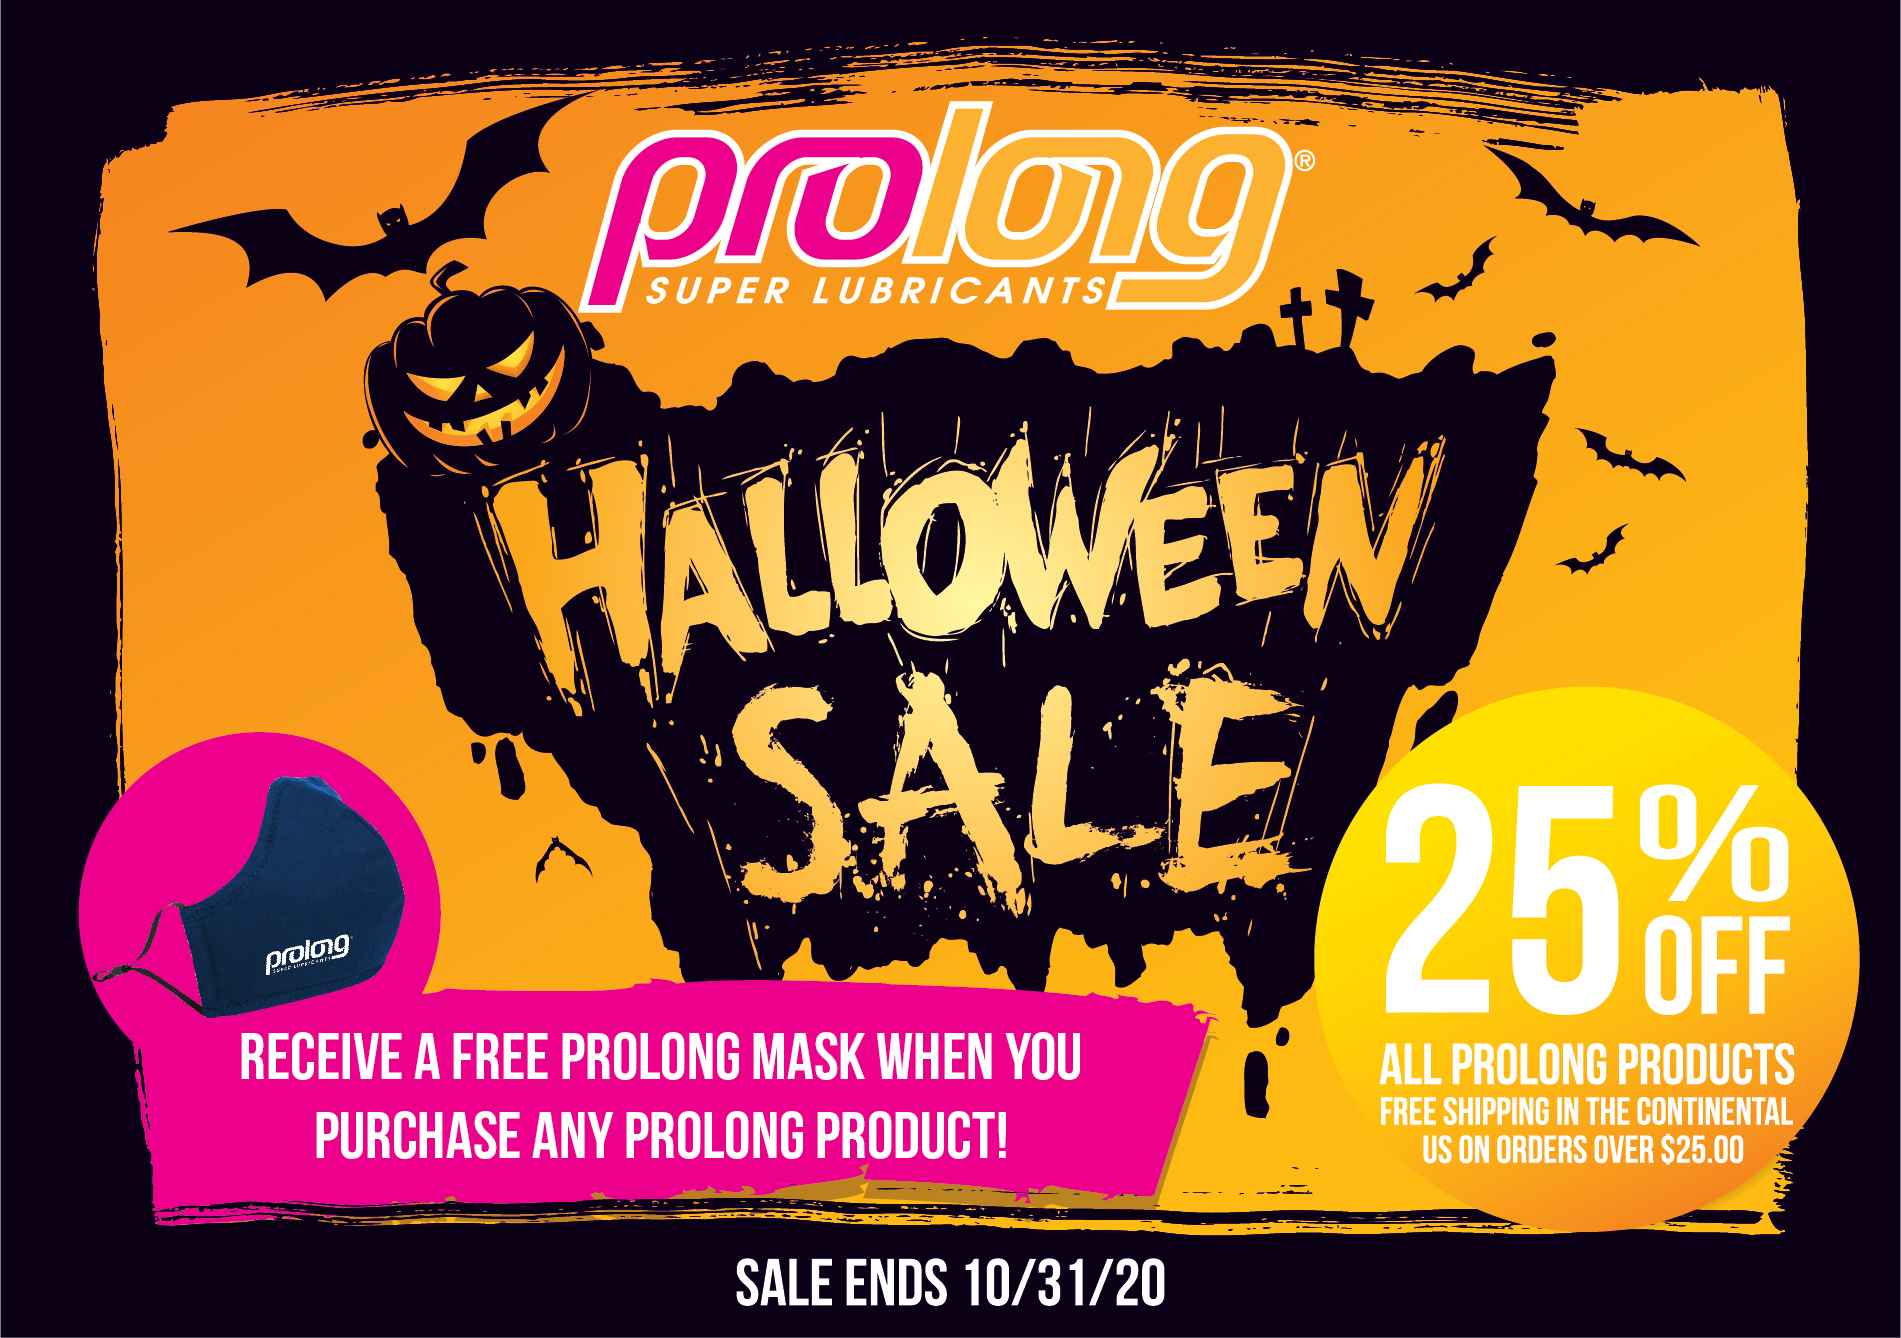 Celebrate Halloween with Prolong